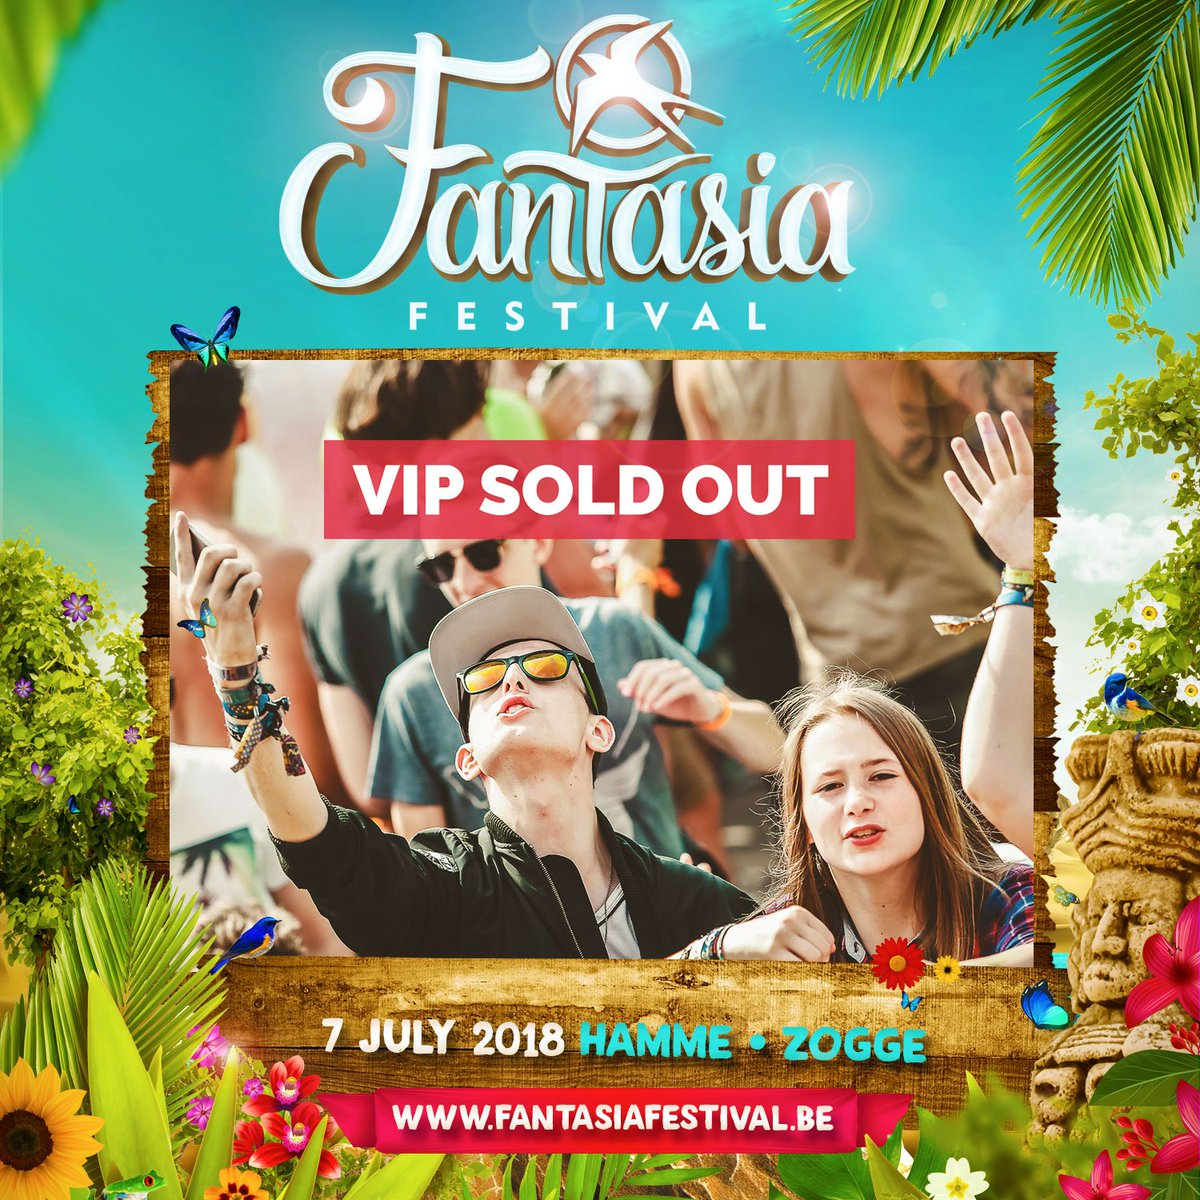 8d8ae8048 ... Remember that Fantasia Festival 2017 was SOLD OUT!!   FantasiaFestival2018  spreadtheword  share  tag  vip  soldoutpic.twitter .com mh3B2BqwCB